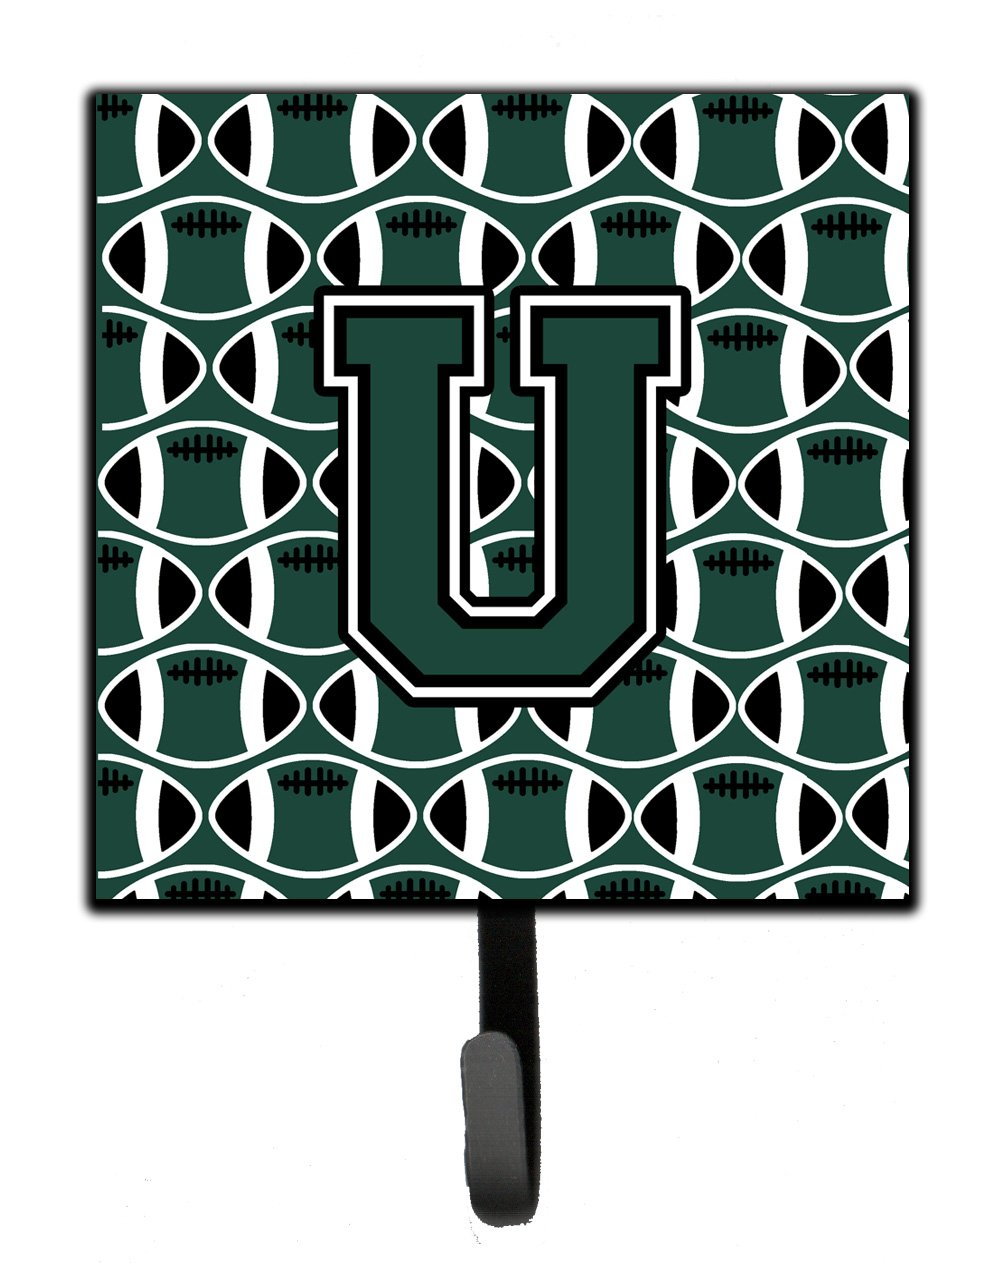 Carolines Treasures Letter U Football Green and White Leash or Key Holder CJ1071-USH4 Small Multicolor